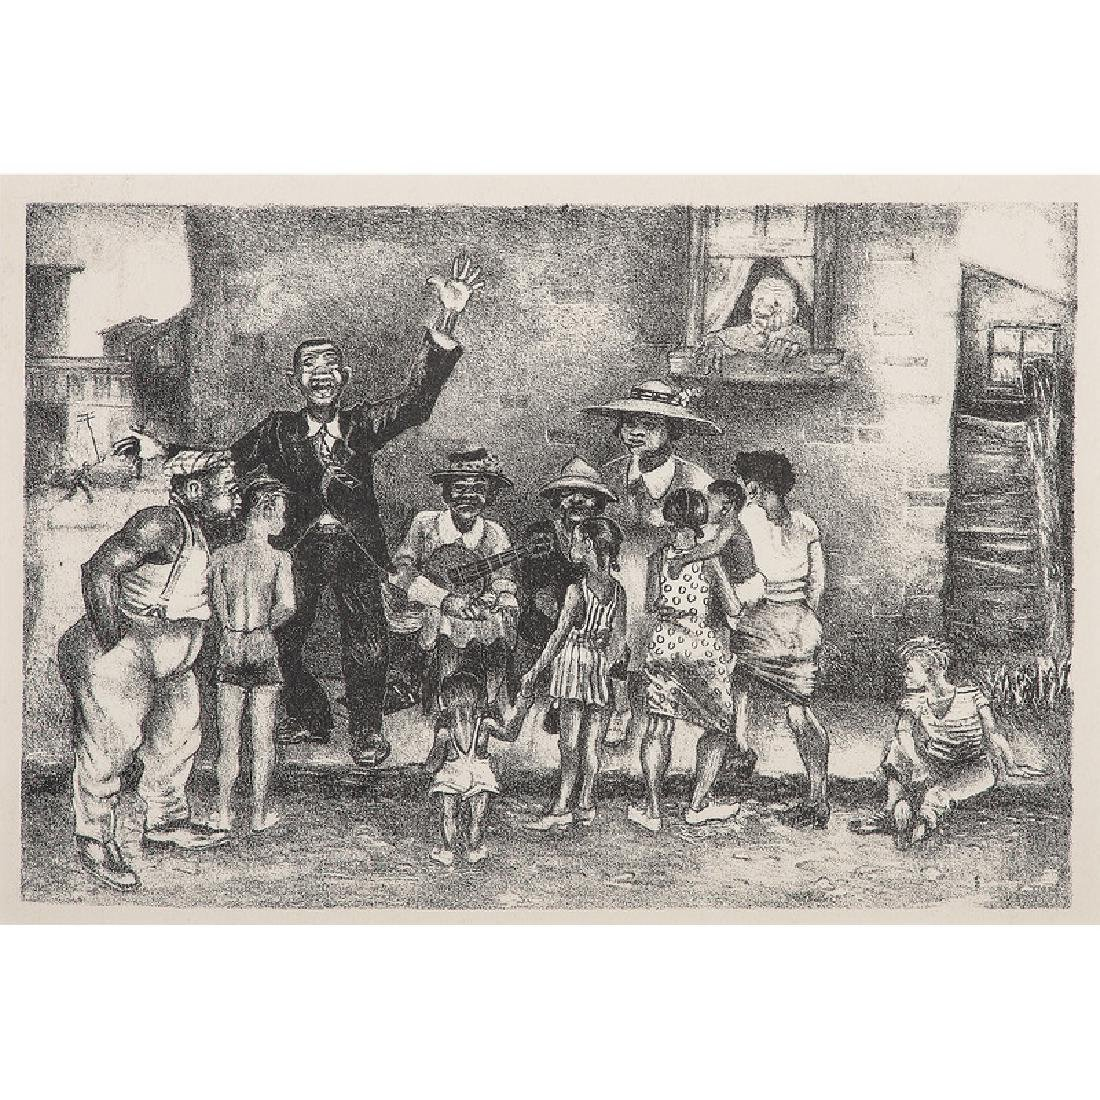 Lithograph of a Street Scene